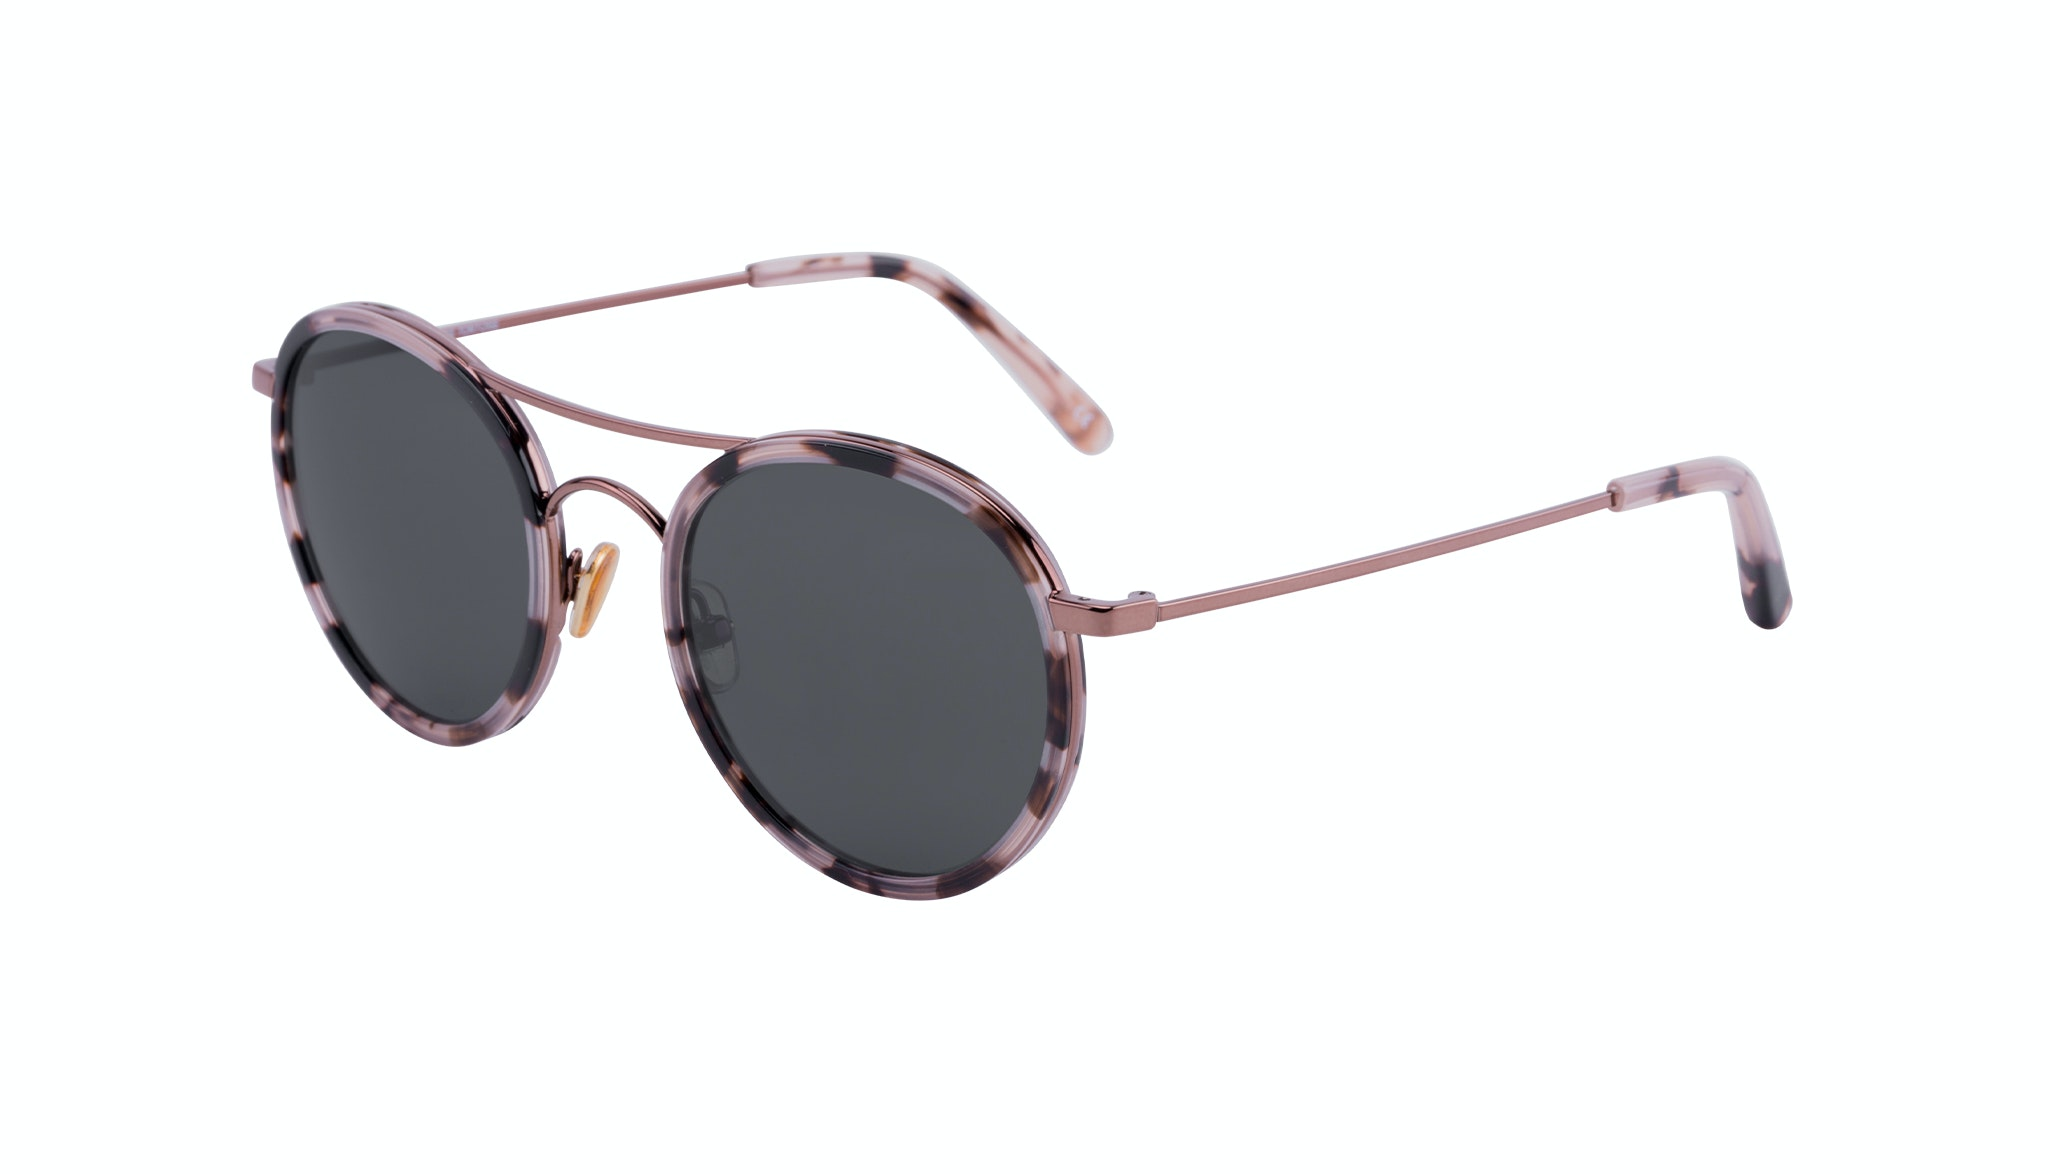 Affordable Fashion Glasses Aviator Round Sunglasses Women Dawn Pink Tortoise Tilt